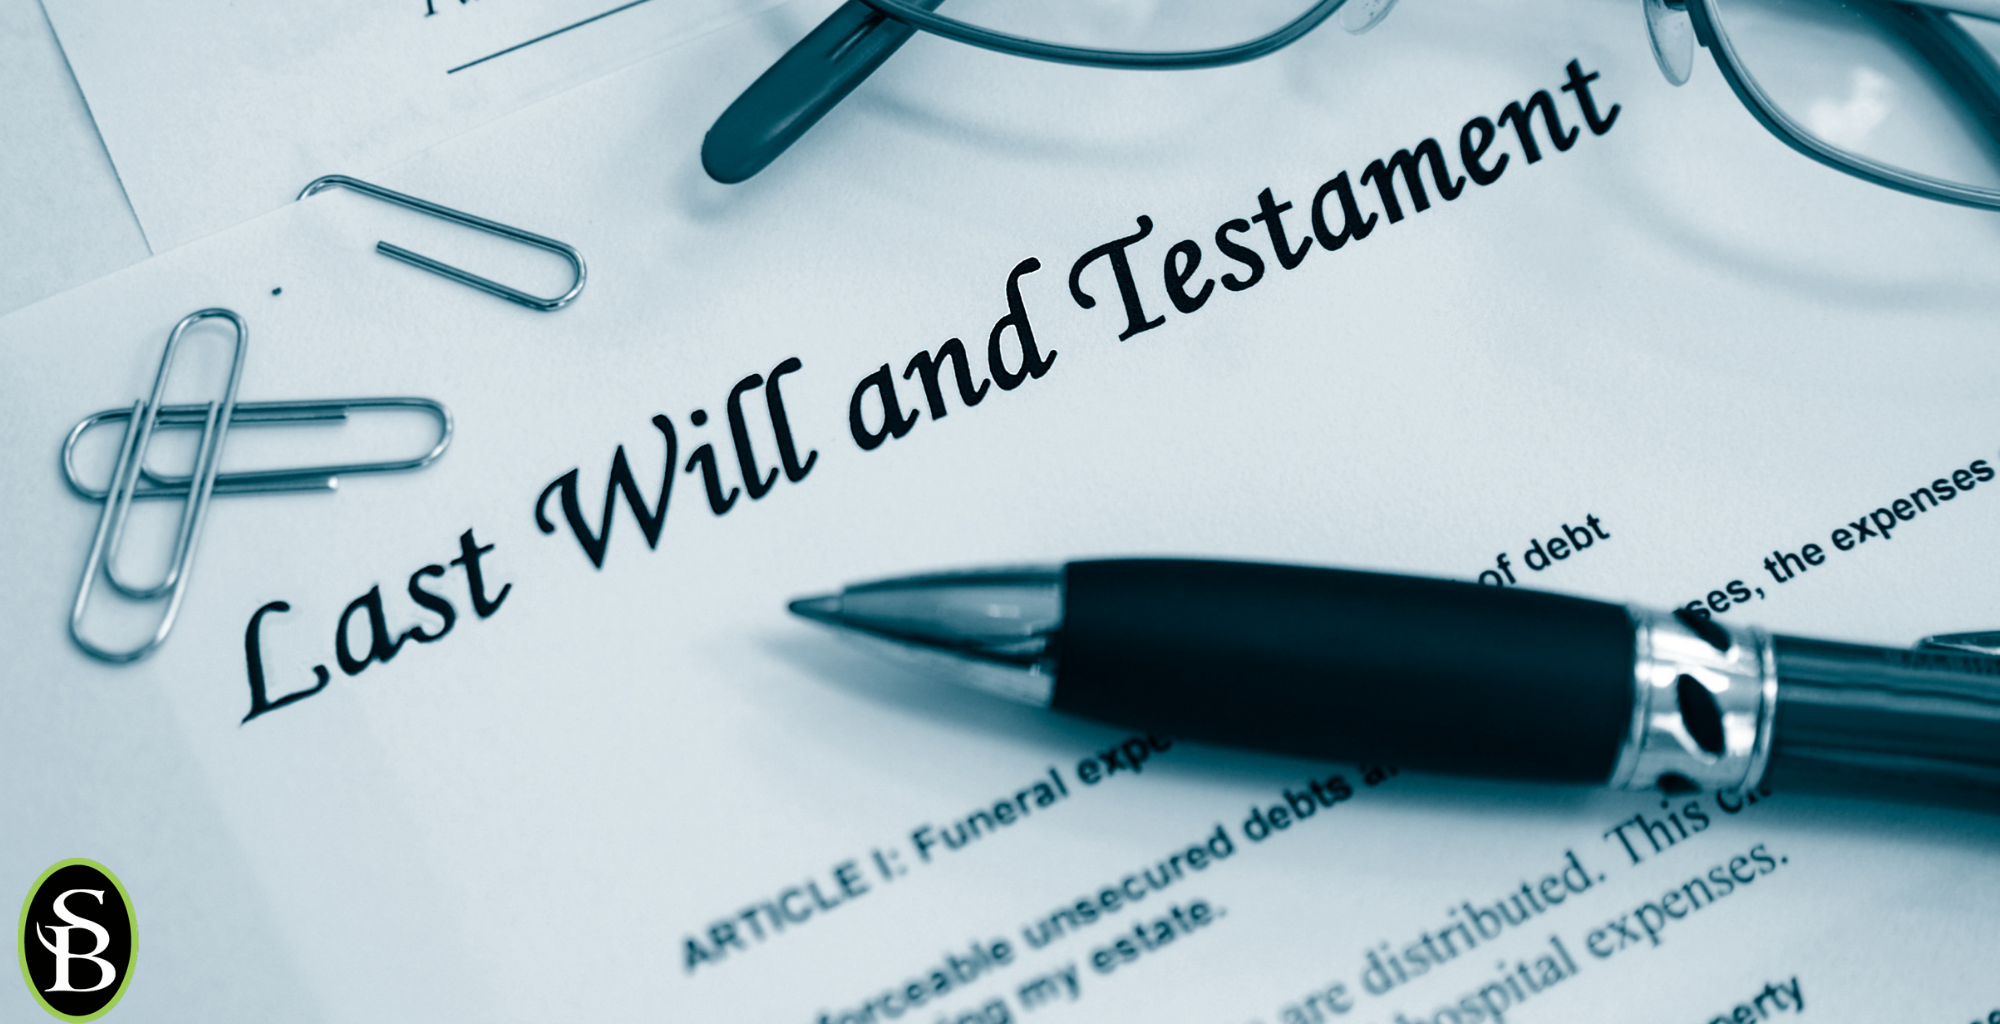 Life partners: a will and an agreement